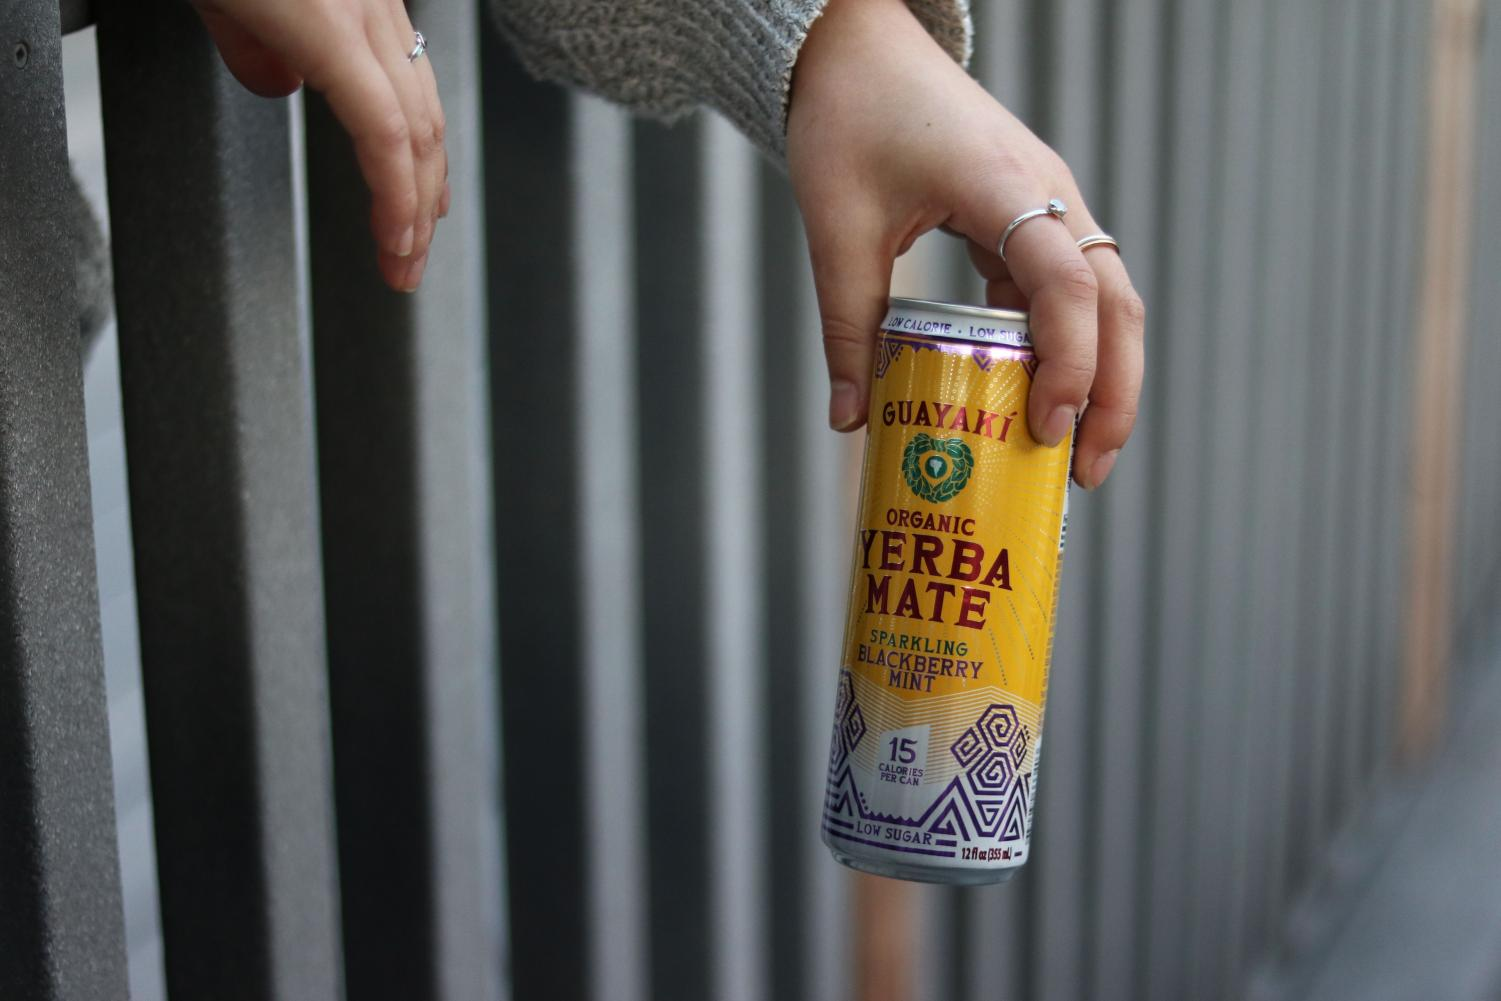 An SRJC student with a sparkling Guayaki relaxes along the fences of the Analy village on Jan 28.